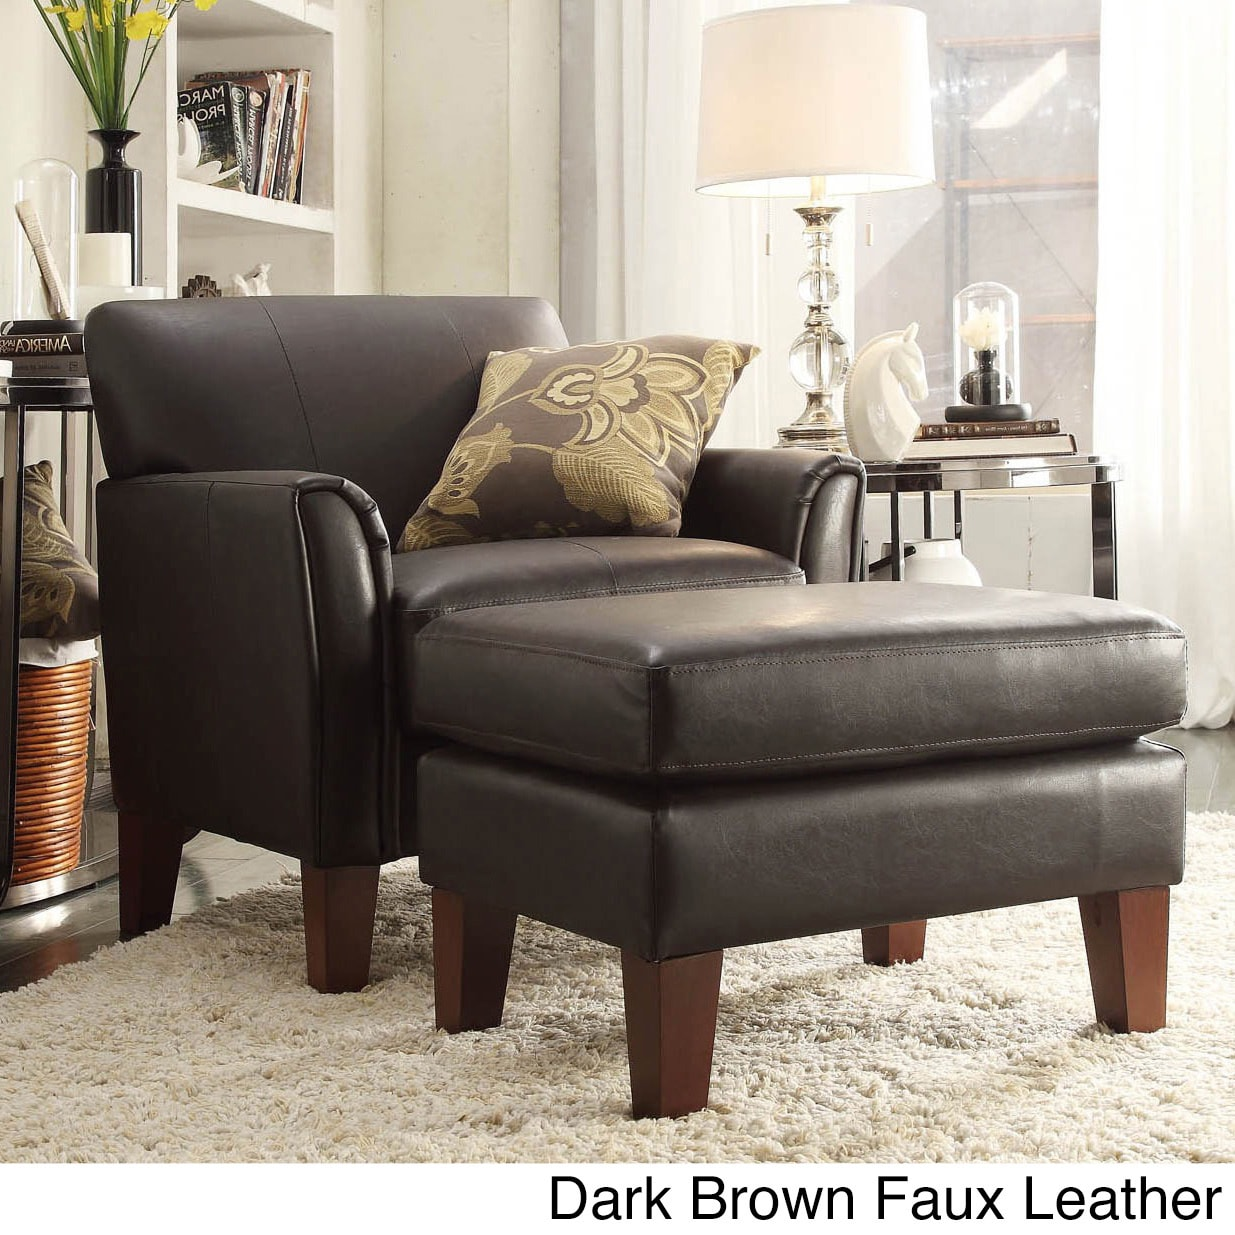 uptown modern accent chair and ottoman by inspire q. Black Bedroom Furniture Sets. Home Design Ideas